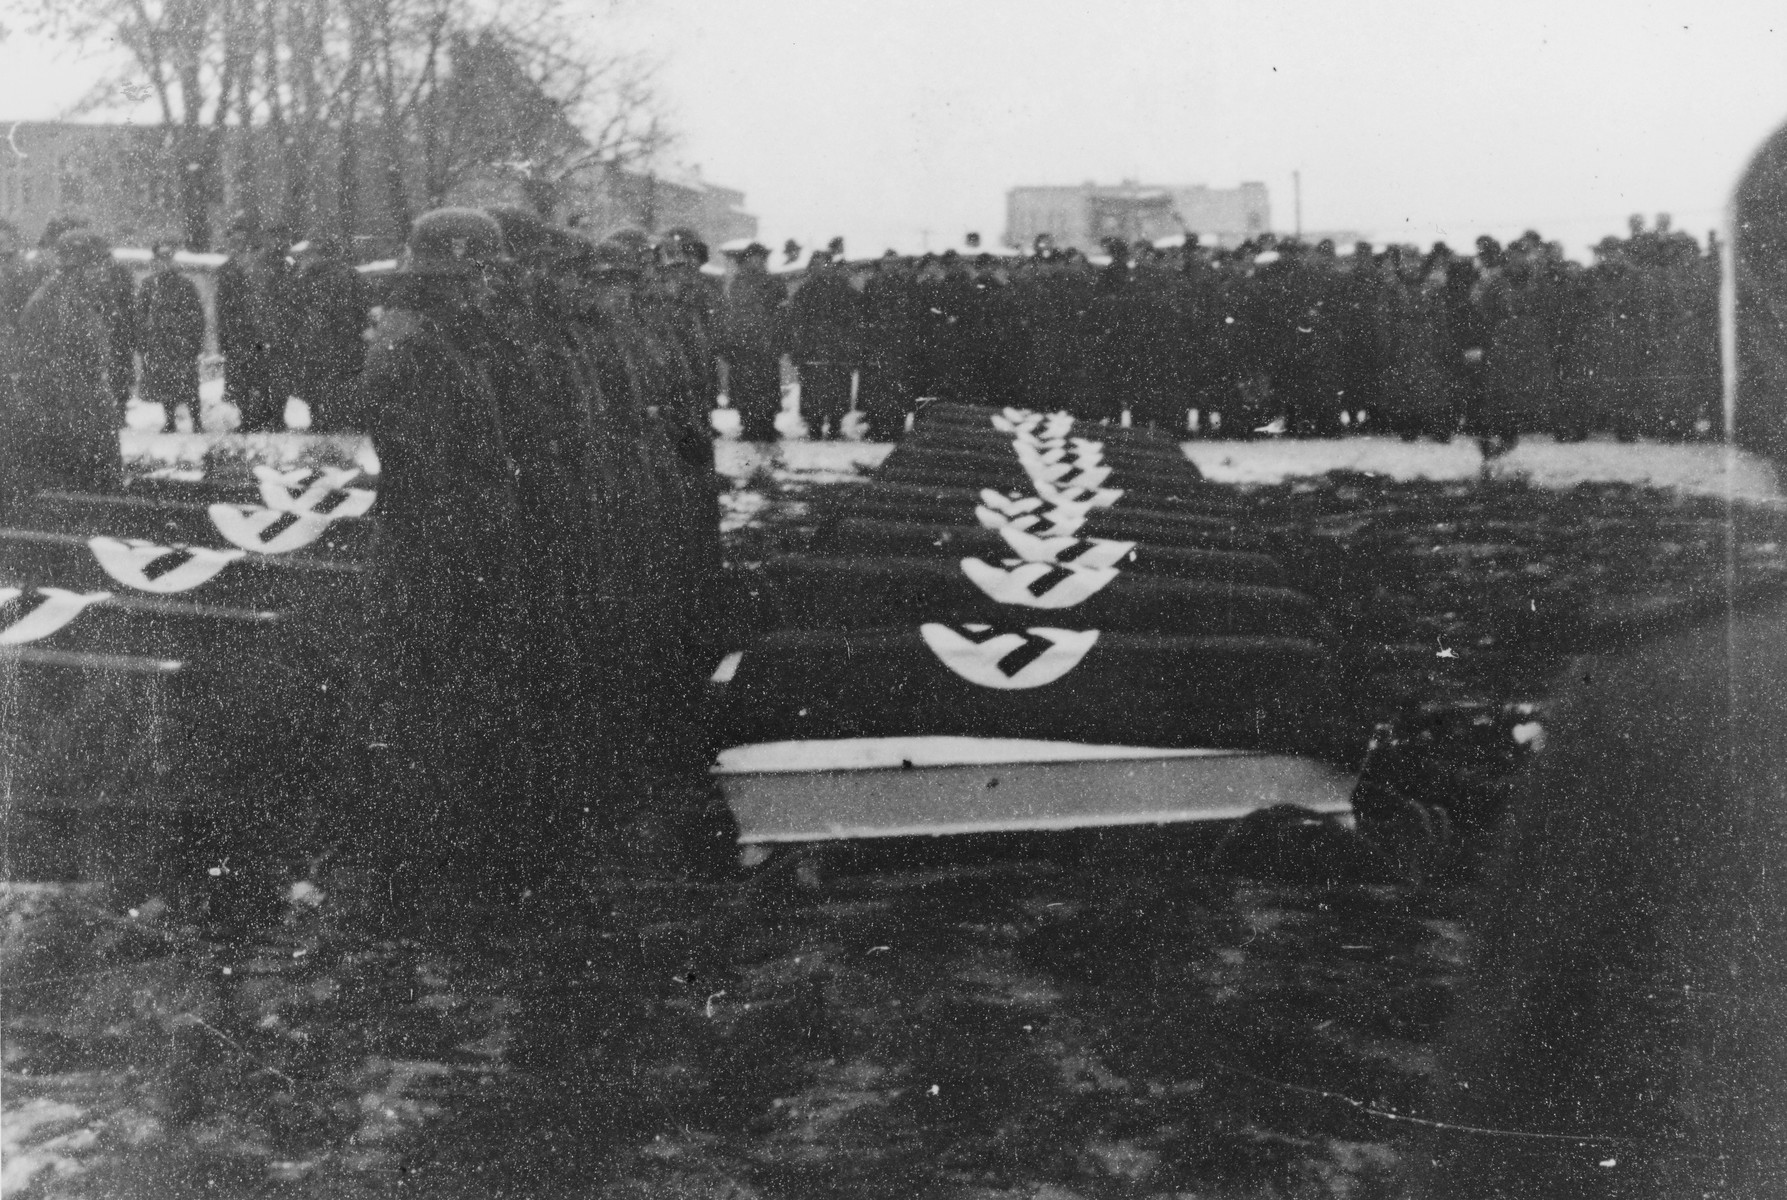 "German troops stand at attention alongside a row of coffins during a military funeral near Auschwitz.  The original caption reads ""Beisetzung von SS Kameraden nach einem Terrorangriff.""  (Burying our SS comrades from a terror attack.)  [This probably is the aftermath of the December 26 bombing based on the snow on the ground but it could also be September 13th bombing of IG Farben in which 15 SS men died in the SS residential blocks and 28 were seriously wounded.]"